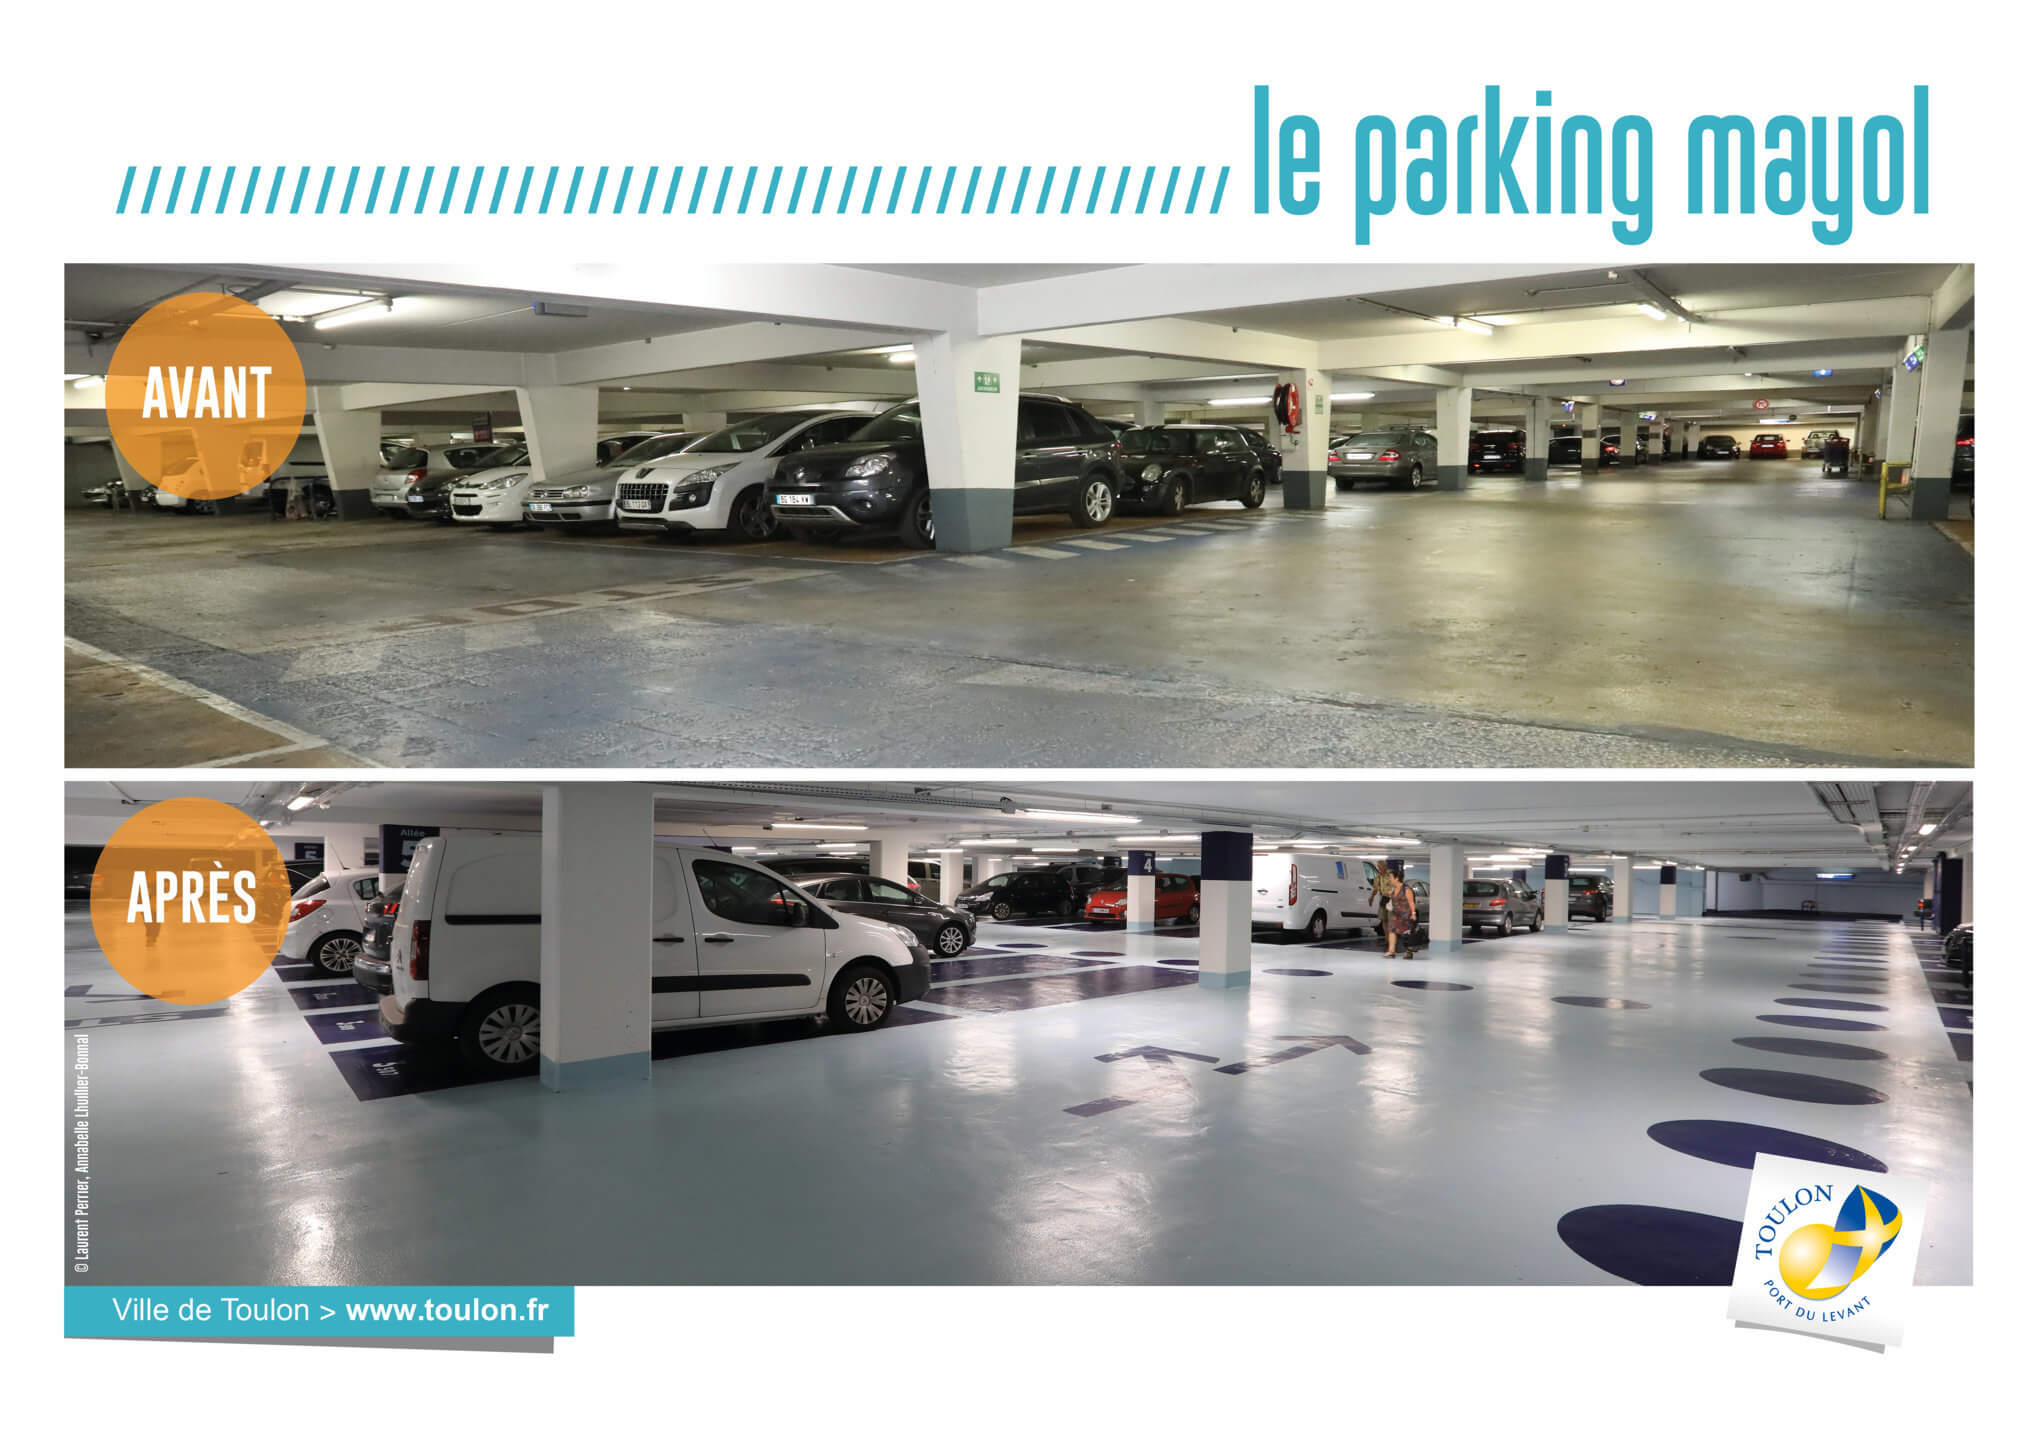 Le parking mayol